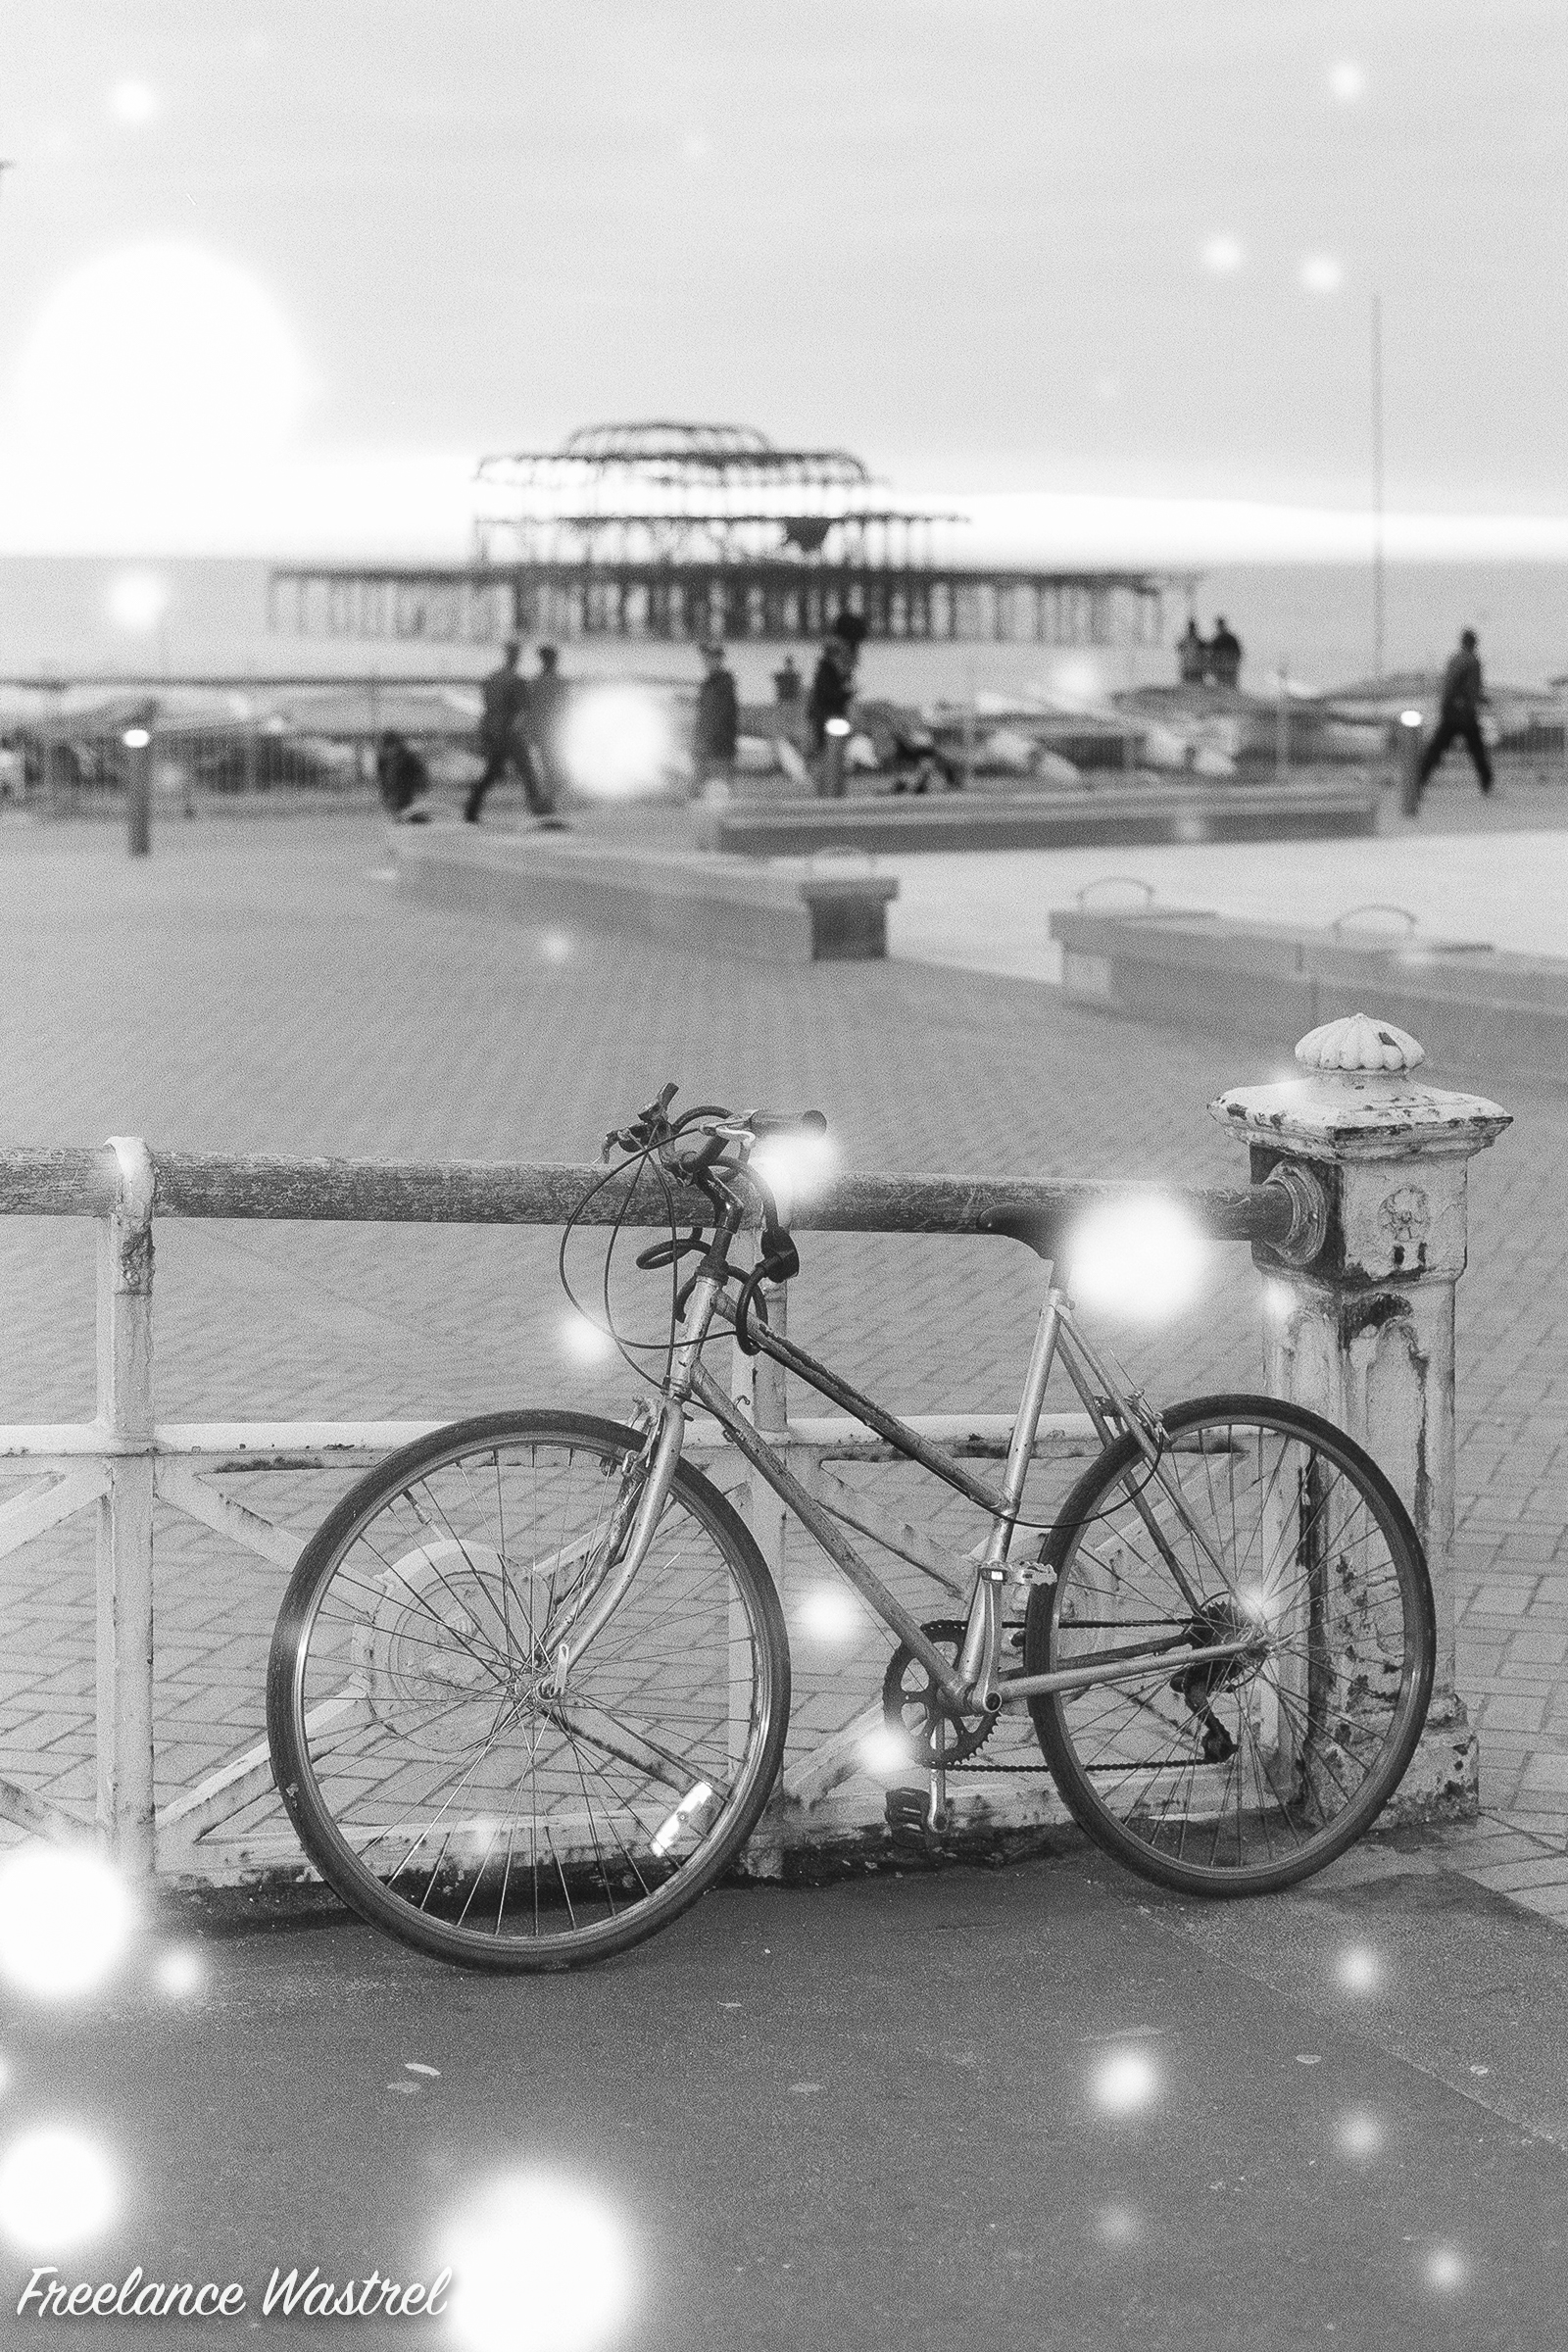 Brighton bicycle, December 2018